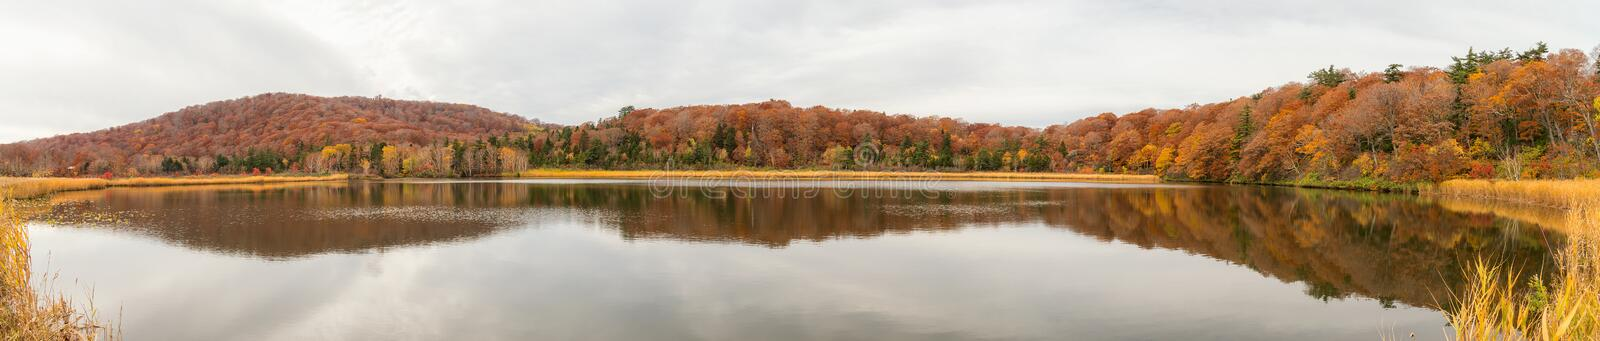 Panoramic view of Onuma pond in autumn season. Panoramic view of Onuma pond in autumn season, Akita, Japan royalty free stock photography